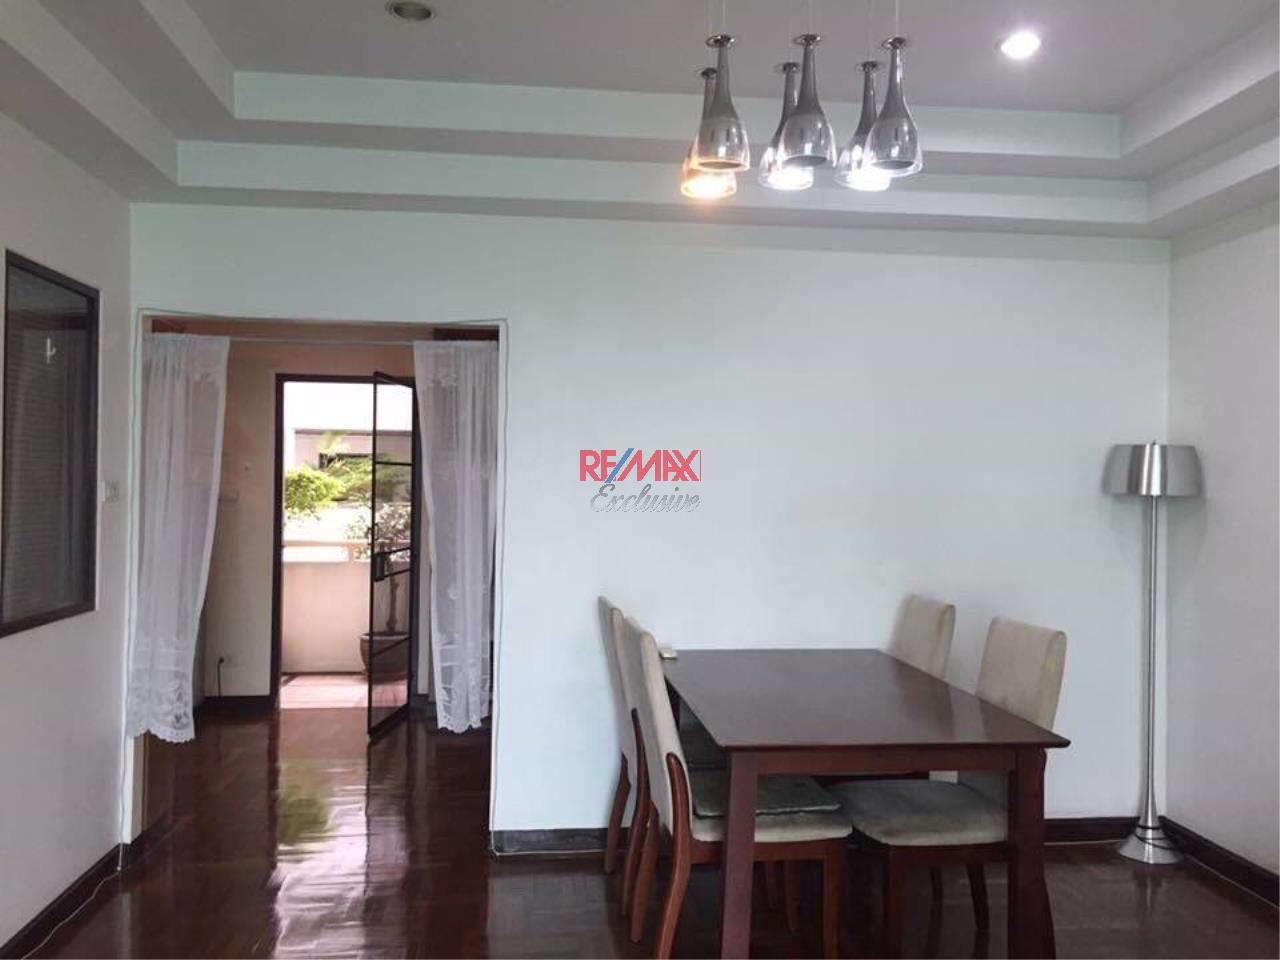 RE/MAX Exclusive Agency's Spacious 2 BR for rent near BTS Onnut, Sukhumvit 50. 2